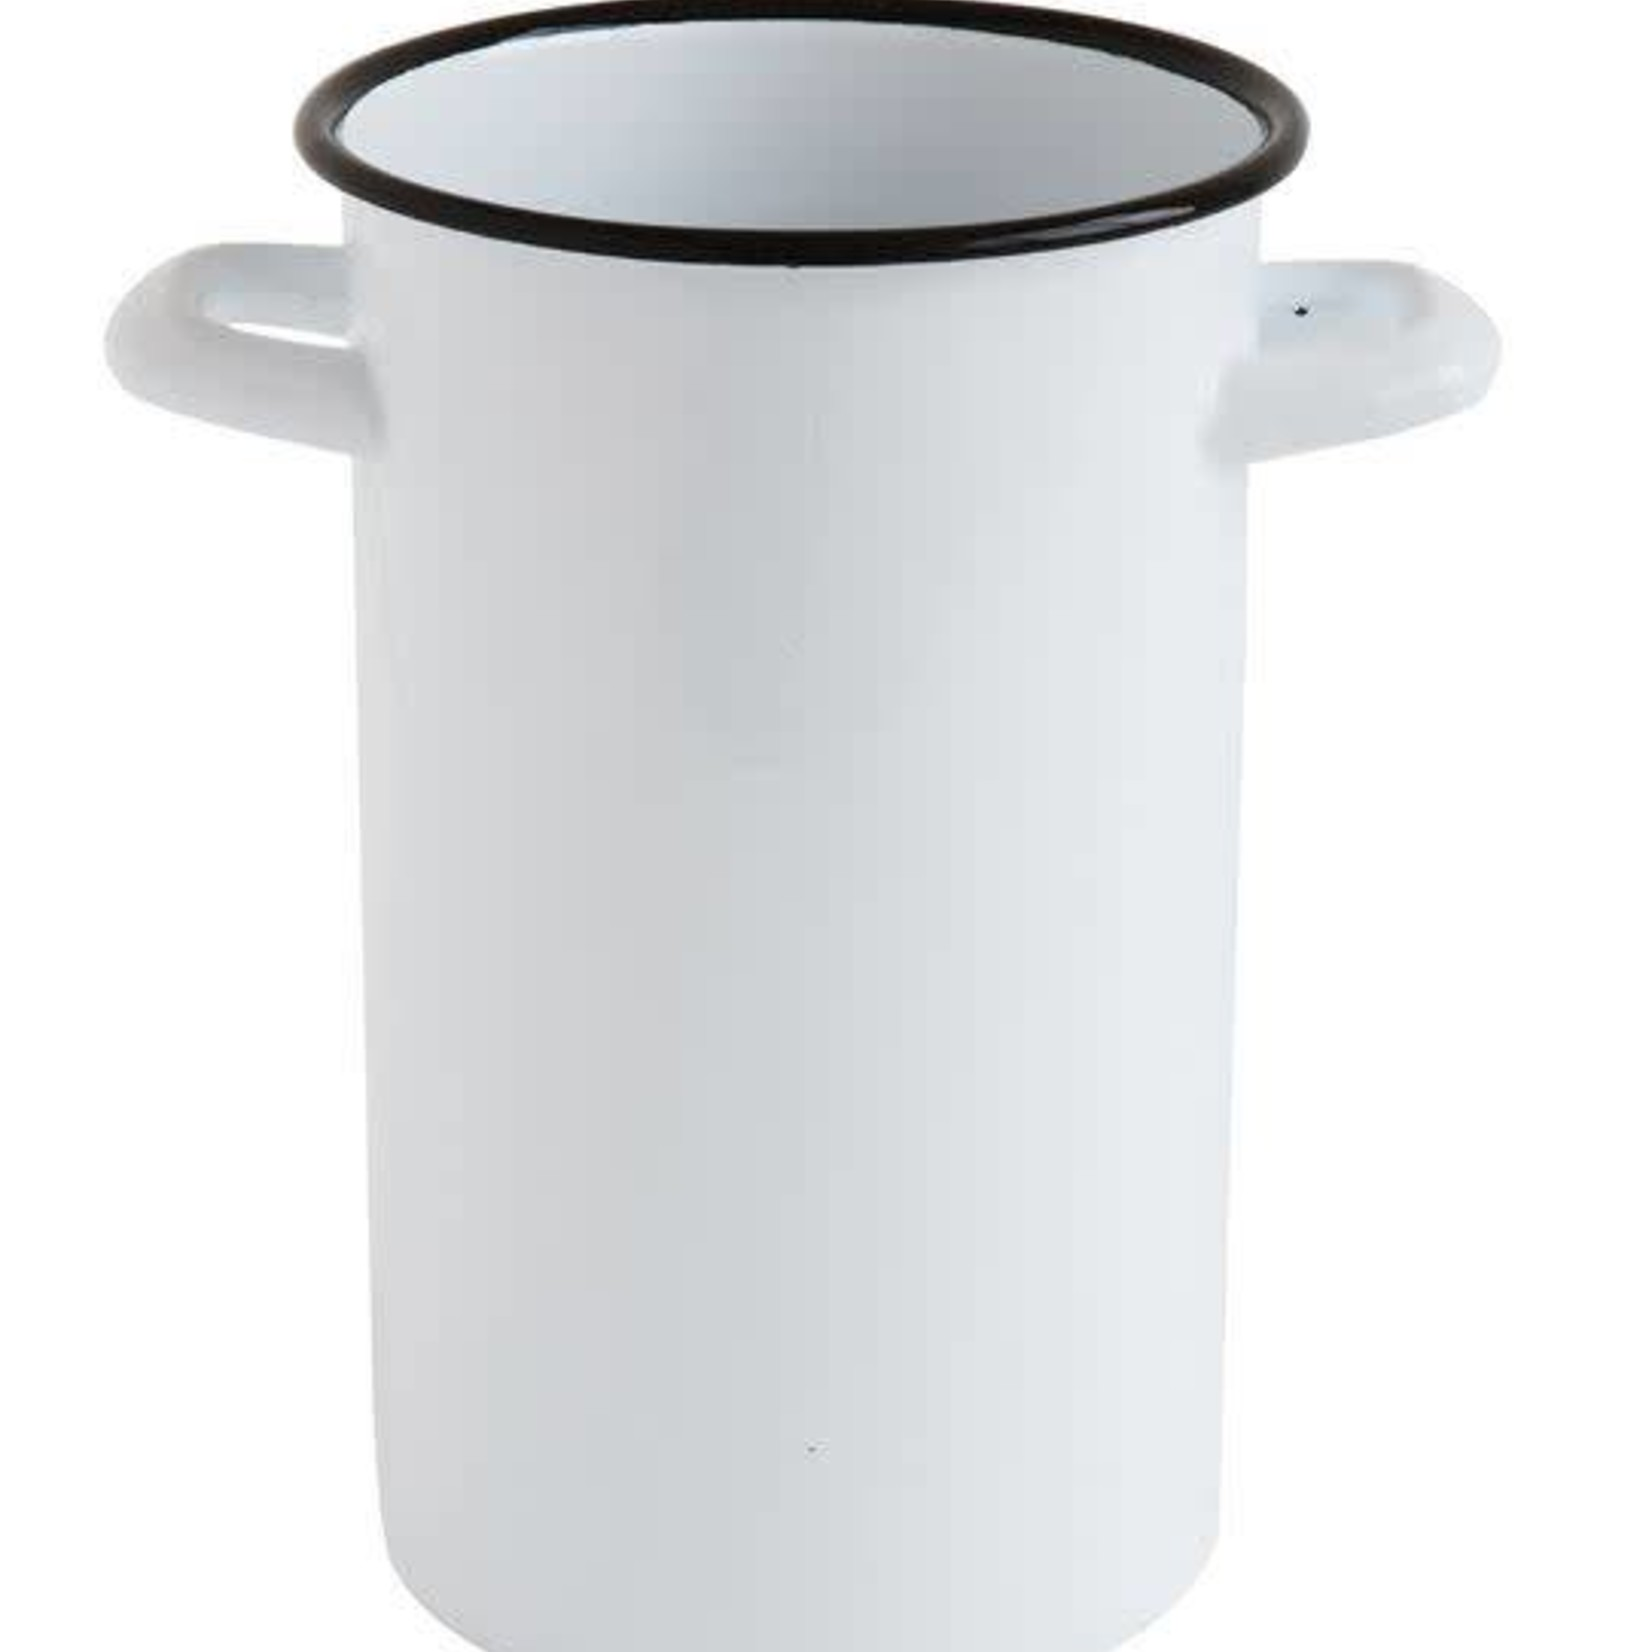 Enameled Container w/ Handles DA9192